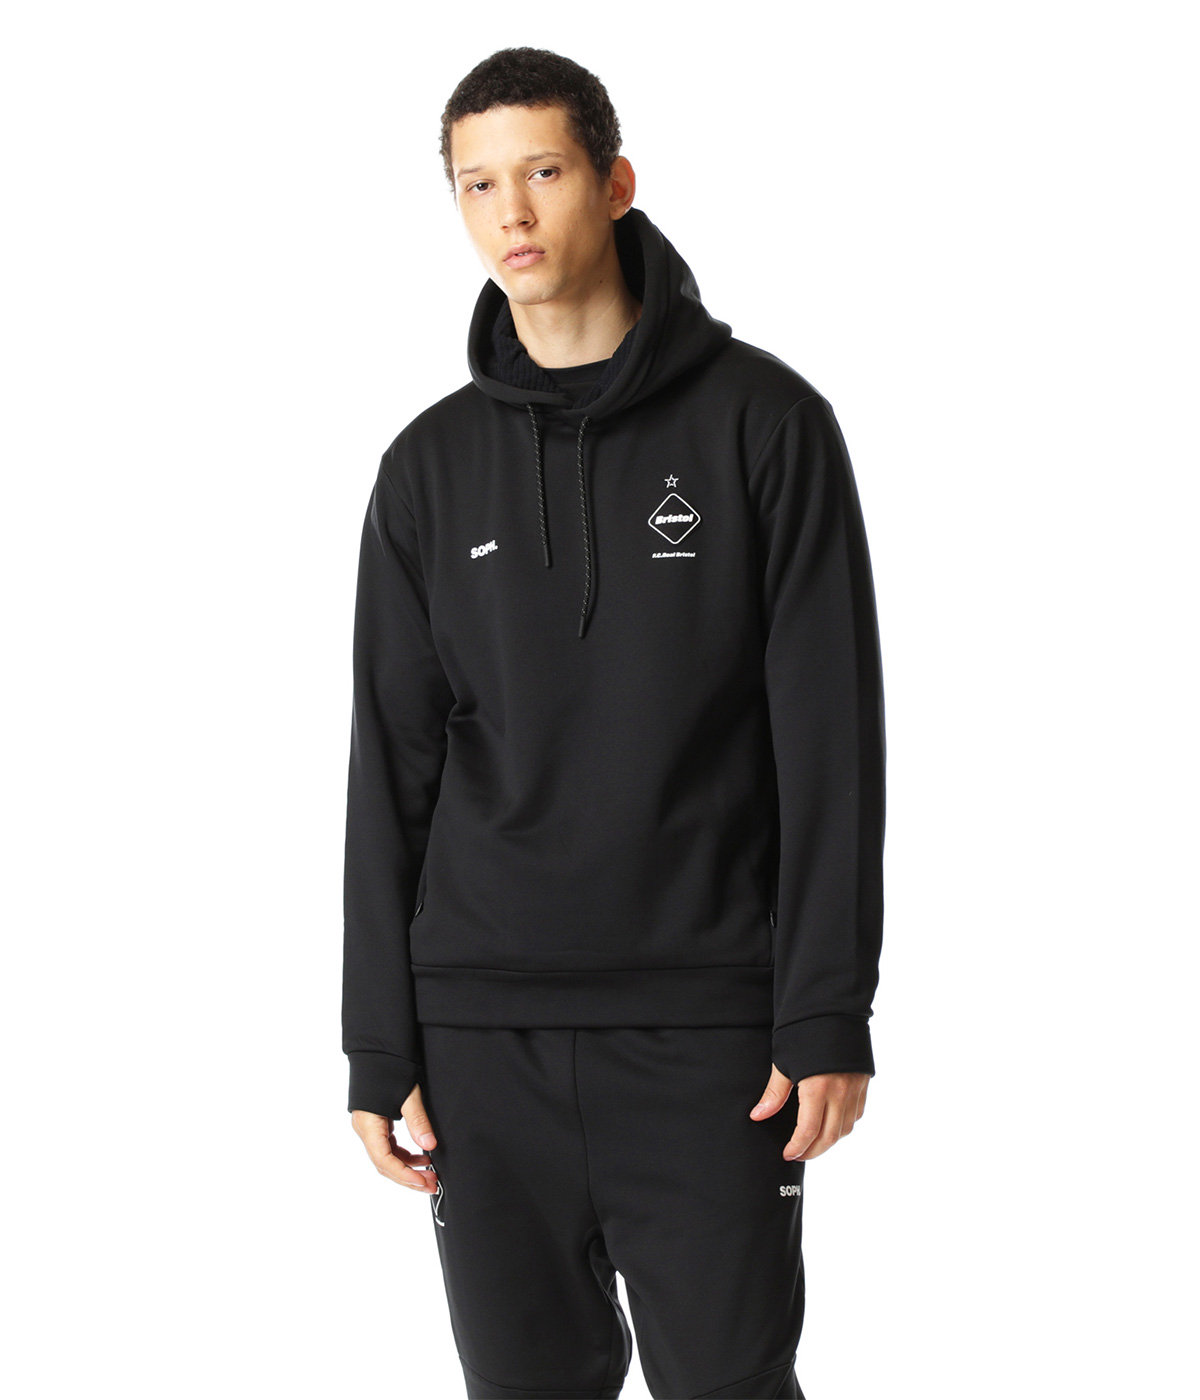 POLARTEC POWER STRETCH TRAINING HOODIE